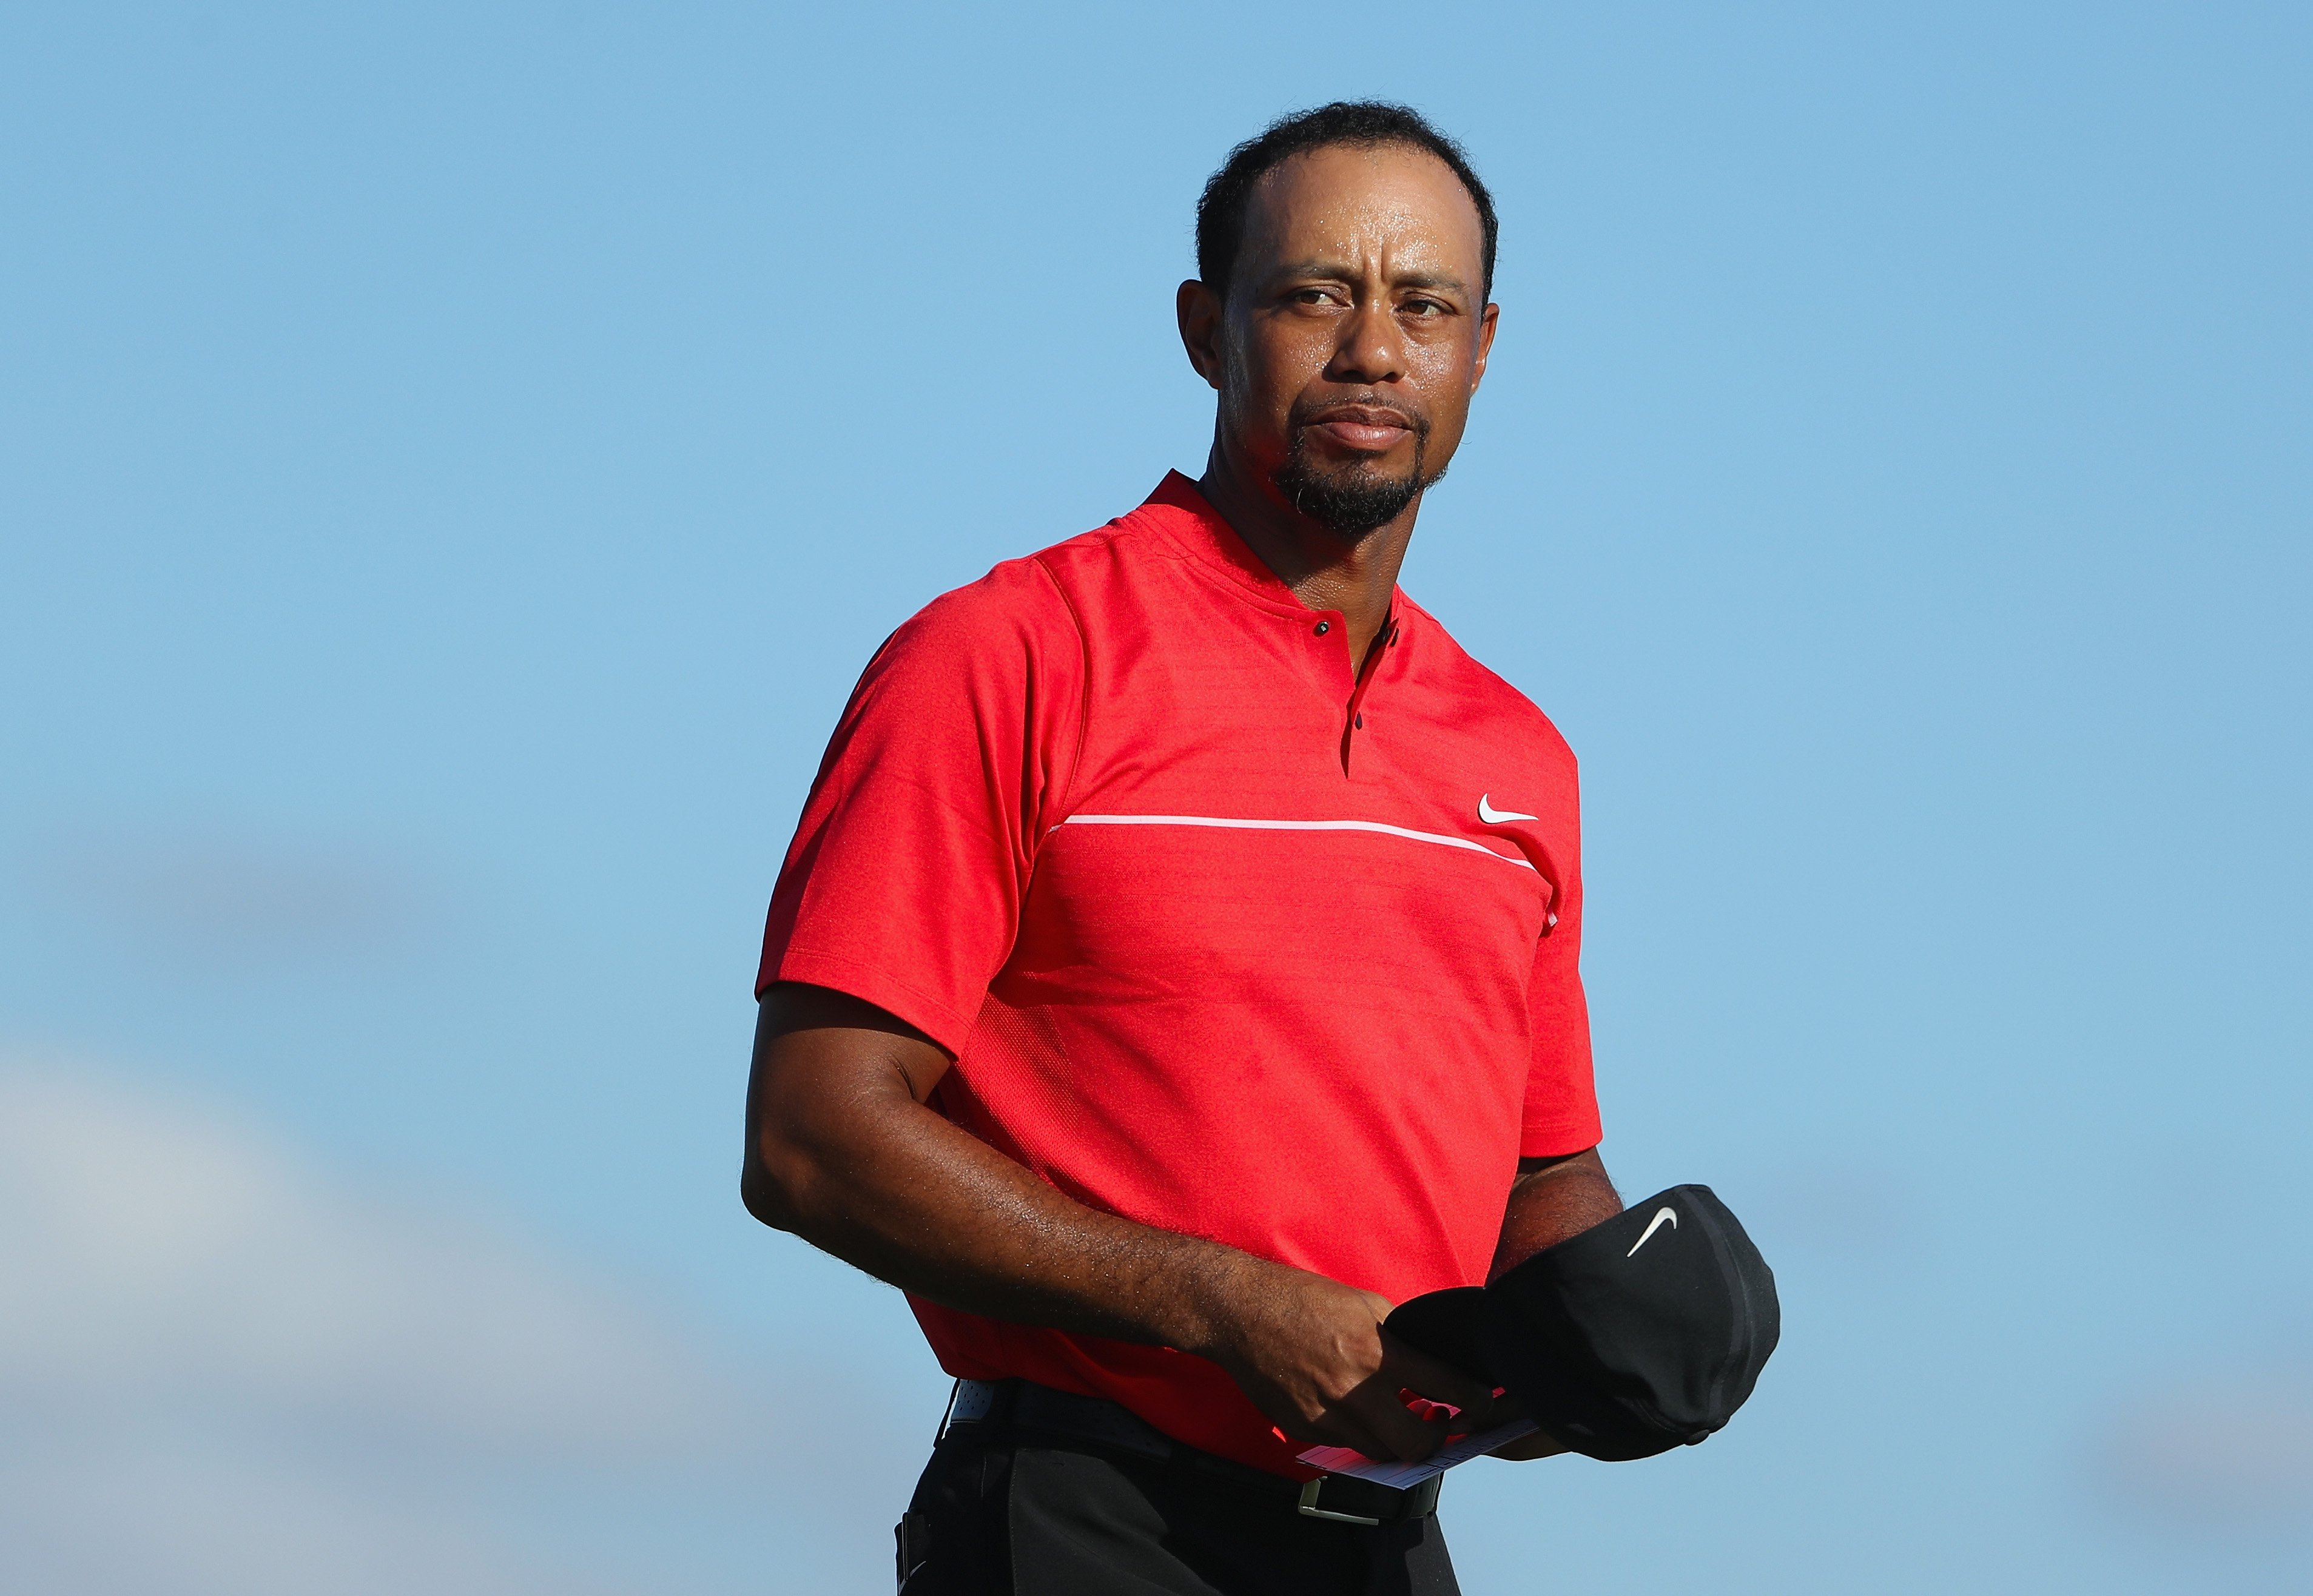 Image Credits: Getty Images / Christian Petersen | Tiger Woods of the United States looks on as he walks off the 18th hole during the final round of the Hero World Challenge at Albany, The Bahamas on December 4, 2016 in Nassau, Bahamas.